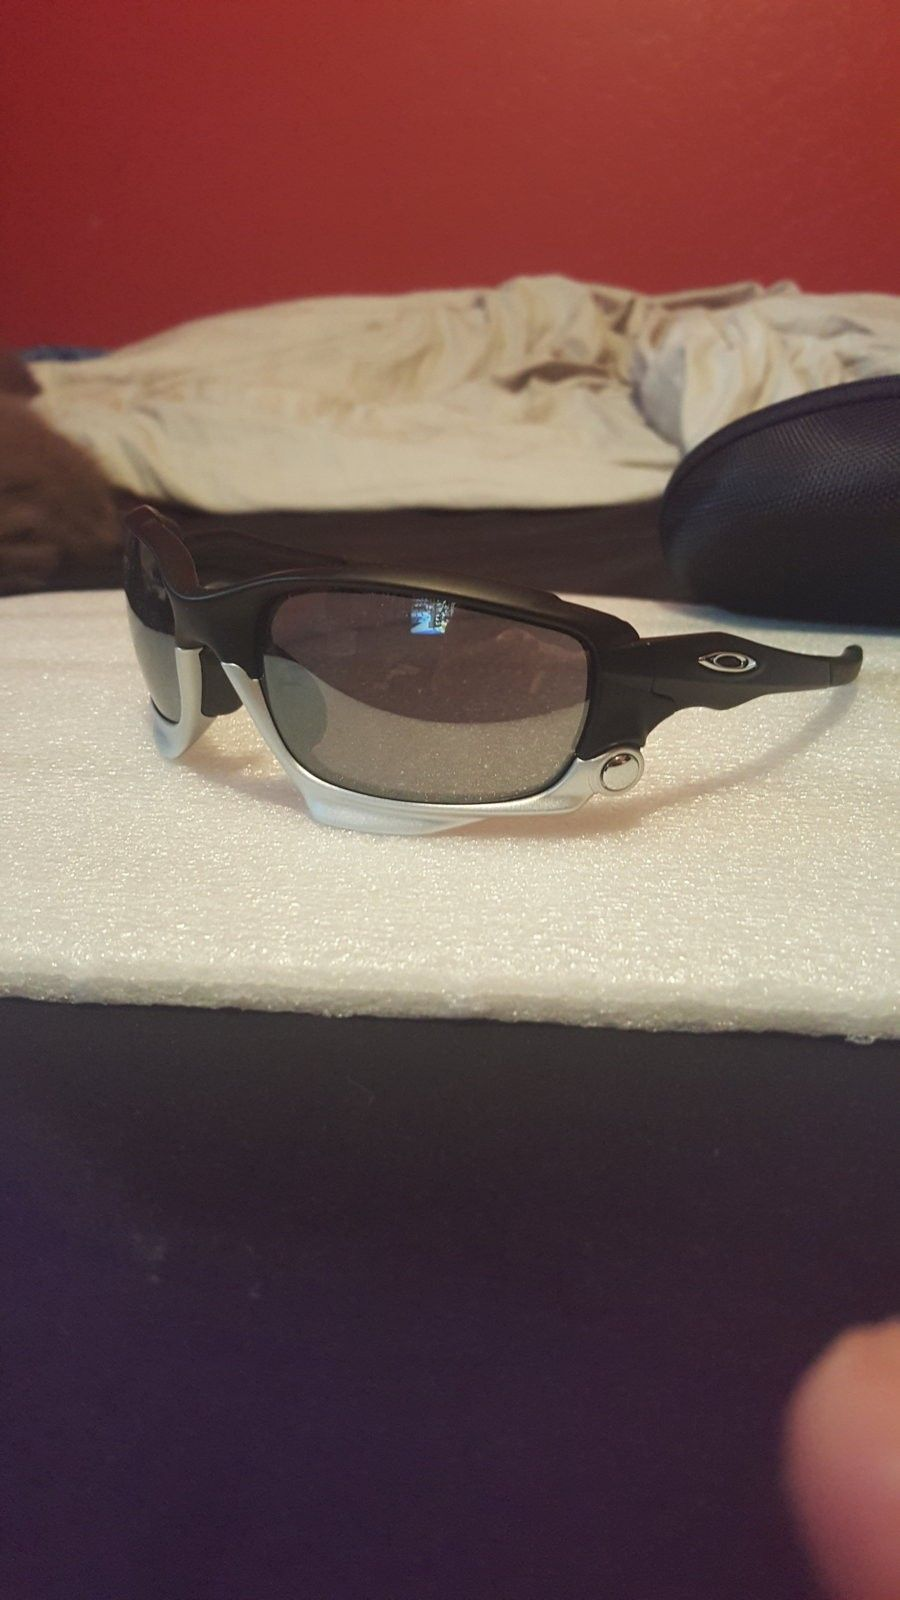 JAWBONE W/ extra lenses. Bnew COND. 70 - 1459470905822-748855474.jpg